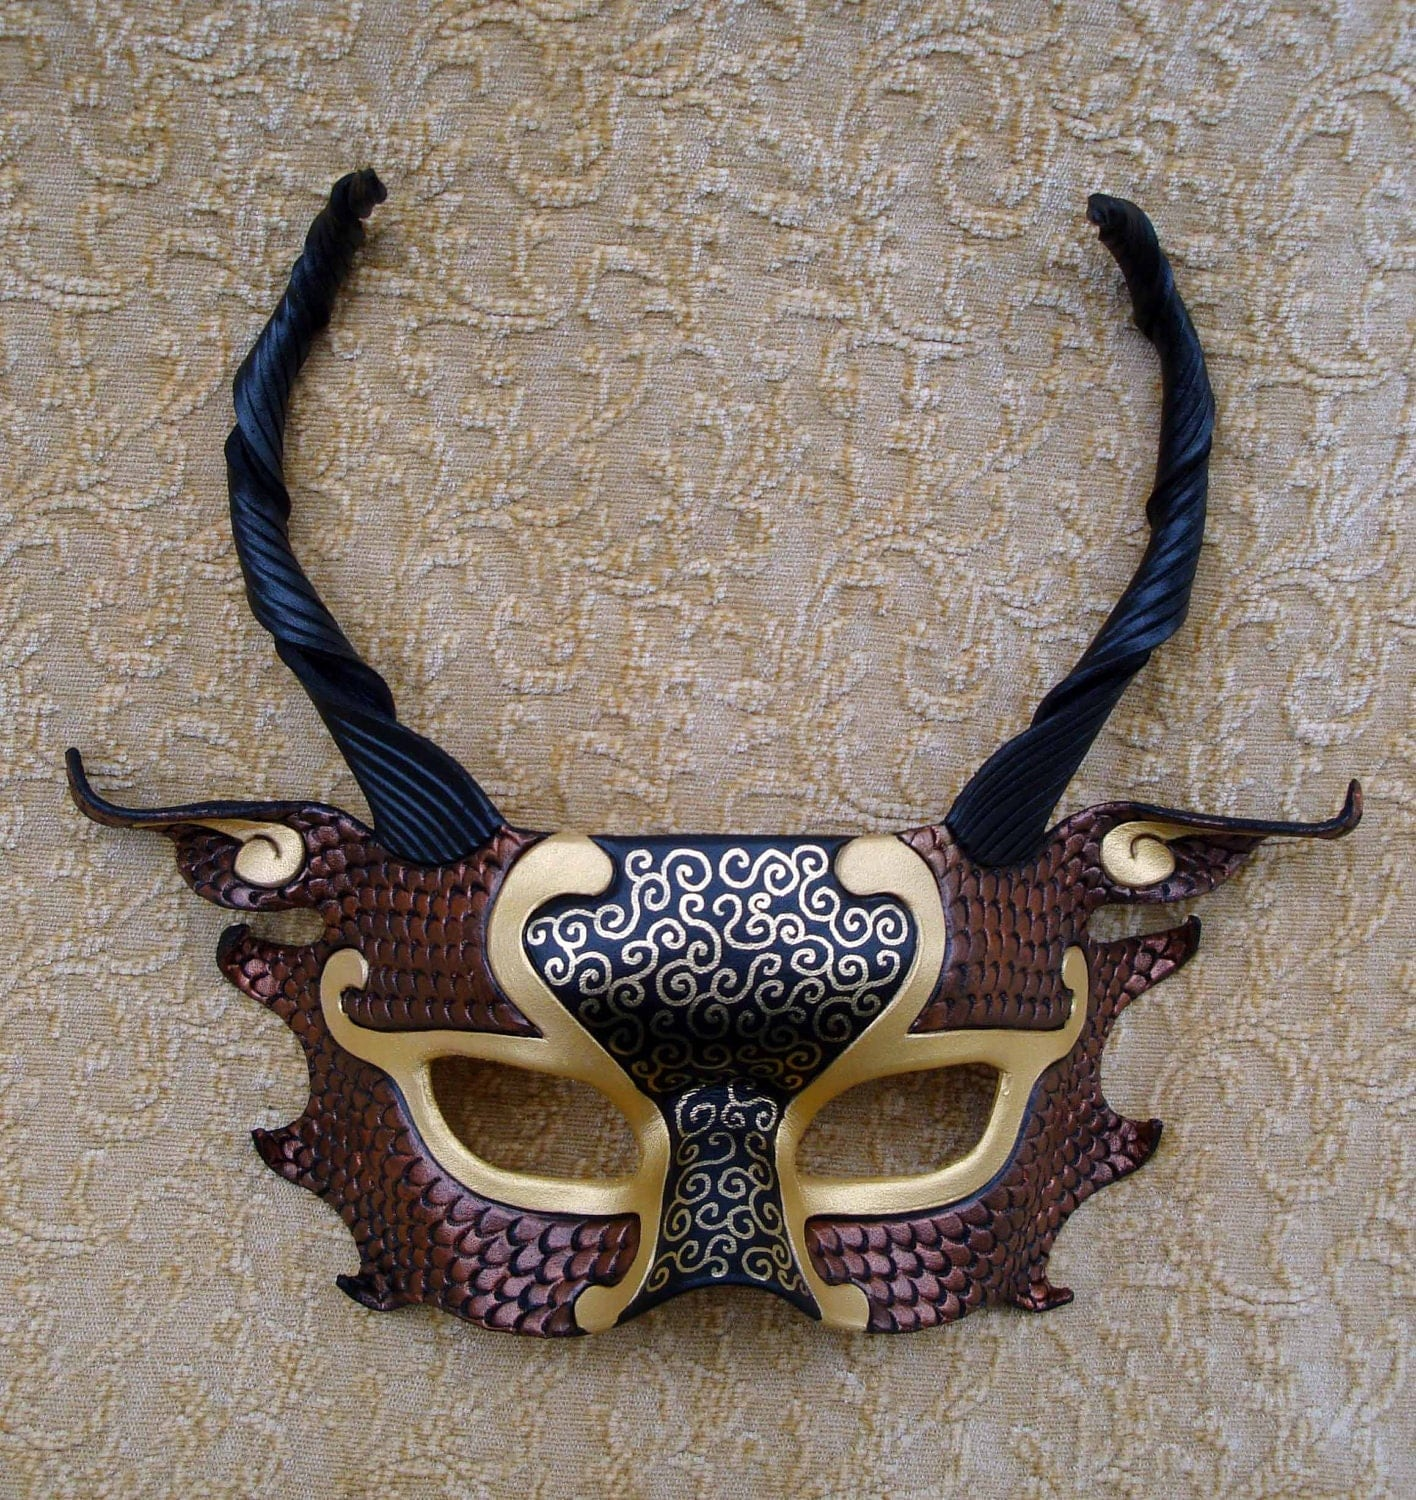 Favorite Like this item?  Add it to your favorites to revisit it later. Black, Gold and Copper Dragon Half Mask handmade leather mask on Etsy